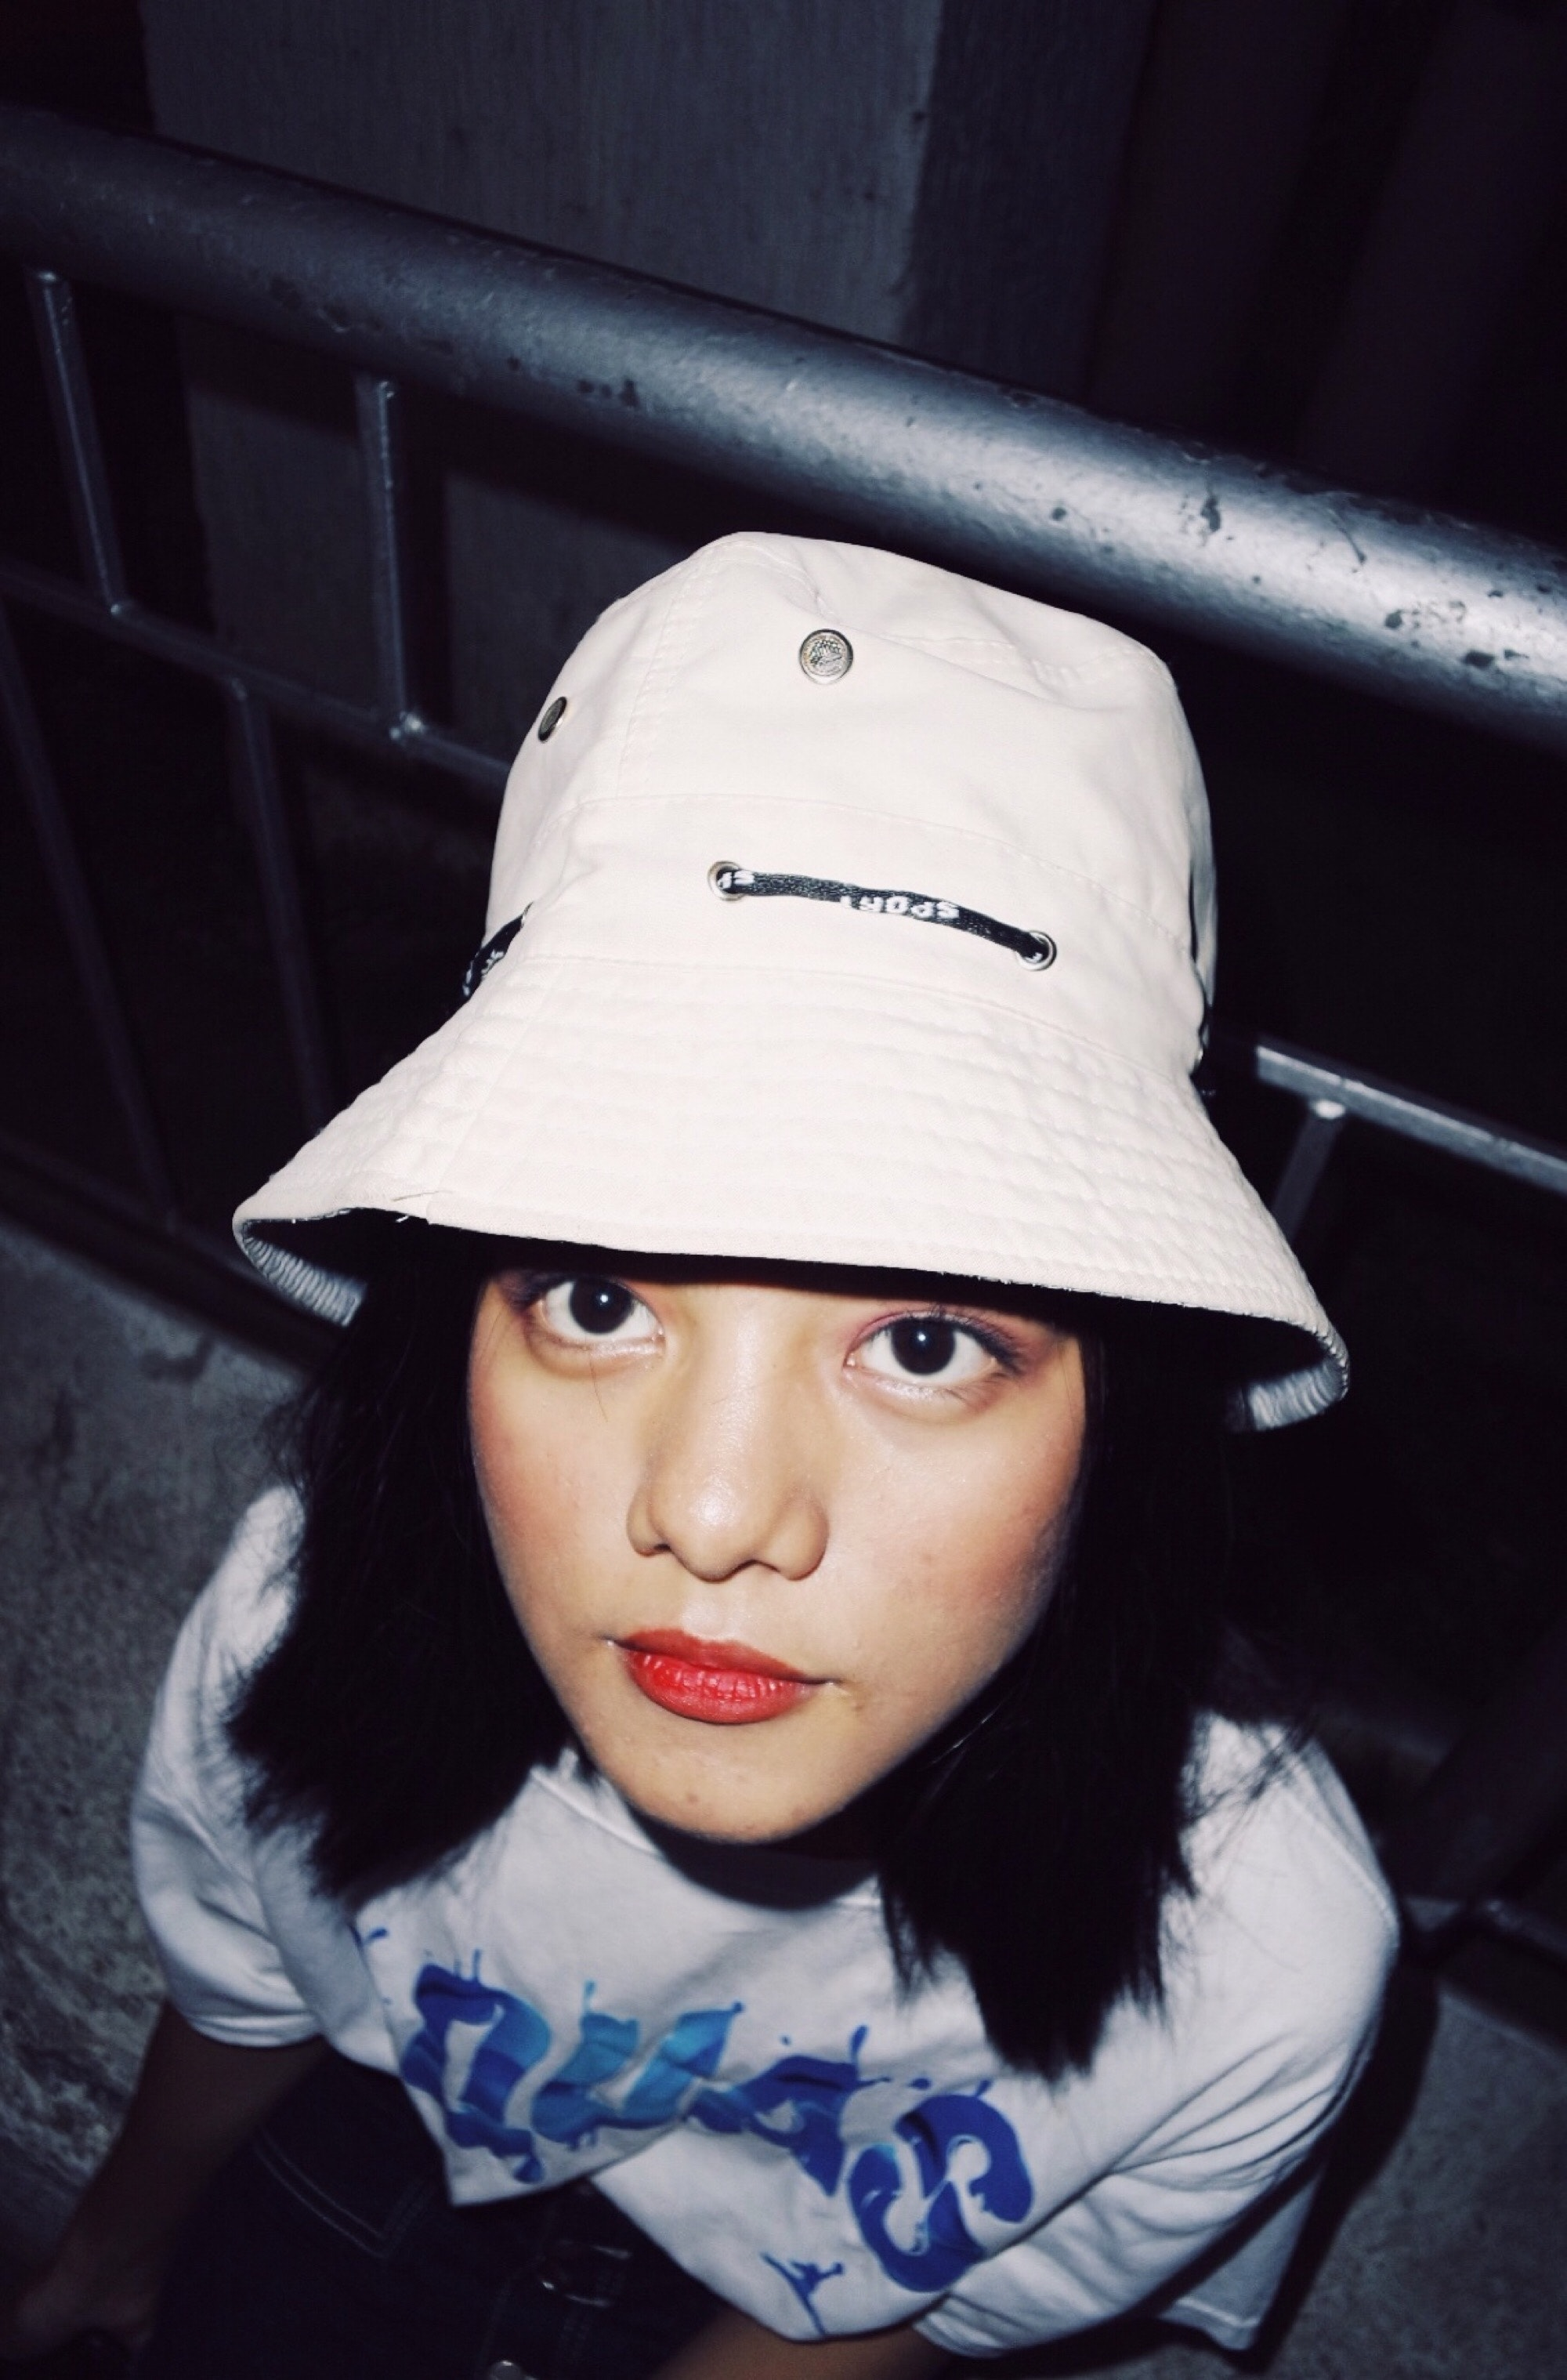 Woman Wearing White Bucket Hat Free Stock Photo